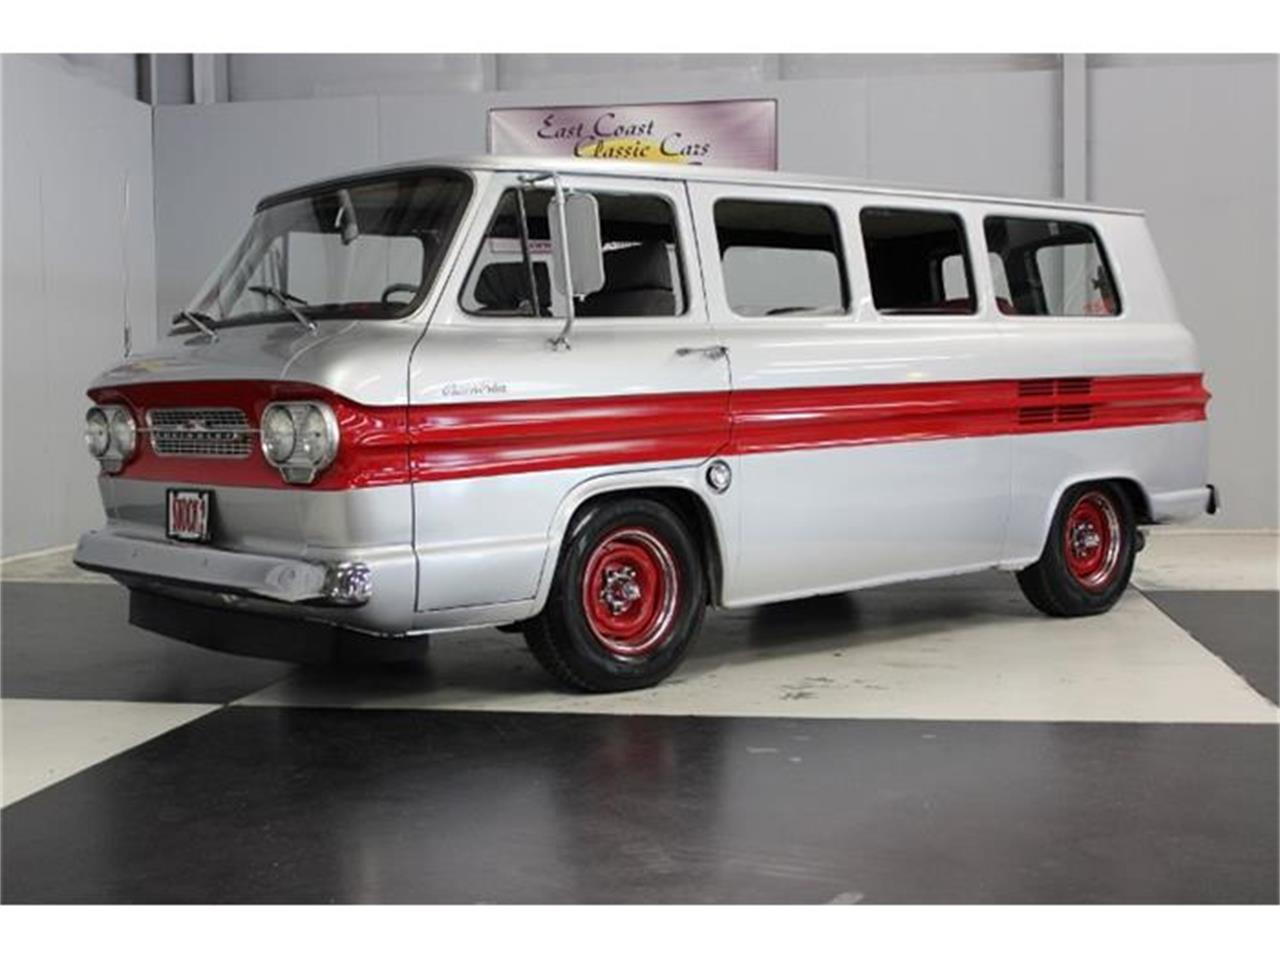 Large Picture of 1961 Chevrolet Van located in Lillington North Carolina - $16,500.00 - F258